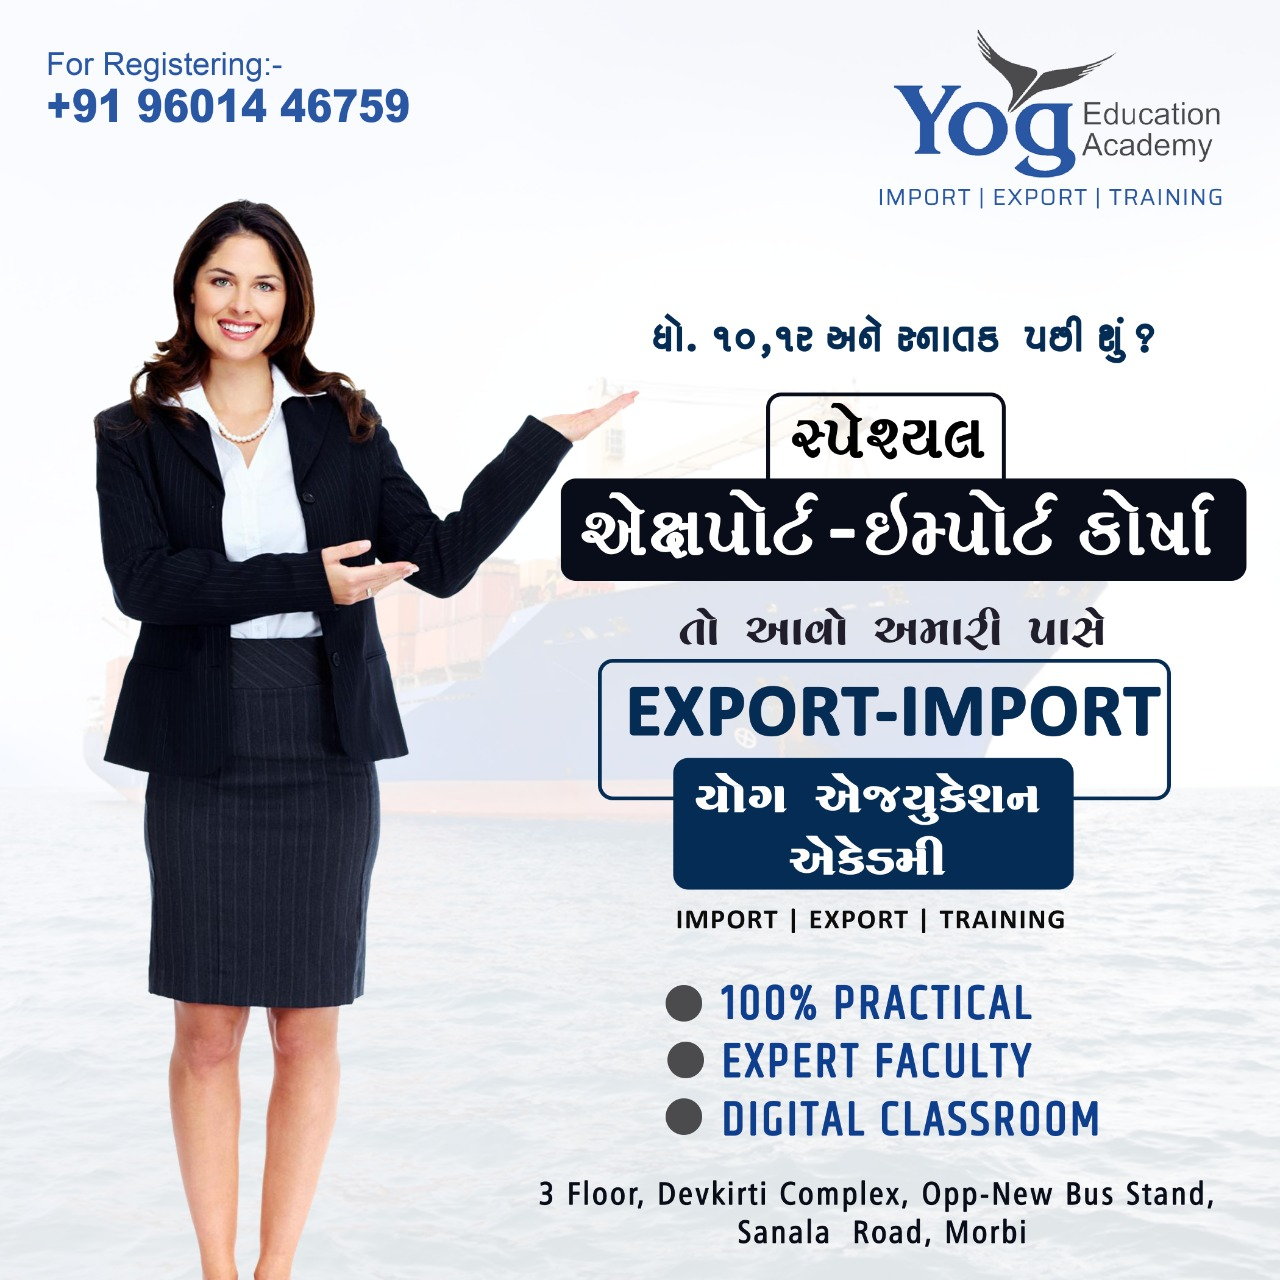 Import Export Management Institute in Morbi | Tachukdi Ad (www.tachukdiad.com)